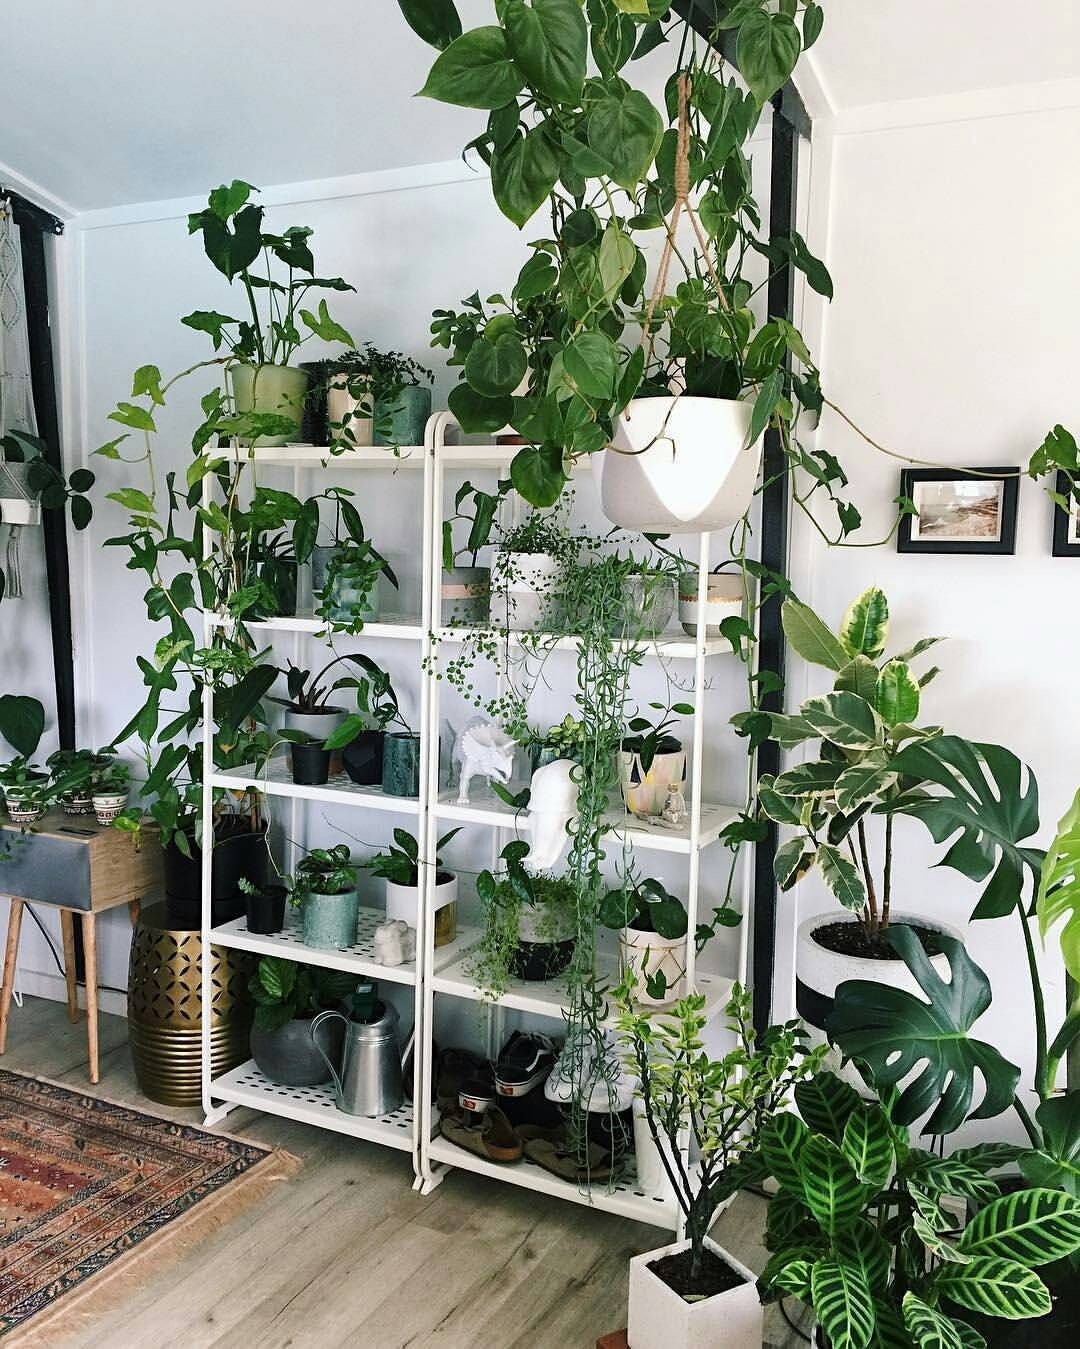 Kitchen Plant Shelf Decorating Ideas: 5,721 Likes, 49 Comments